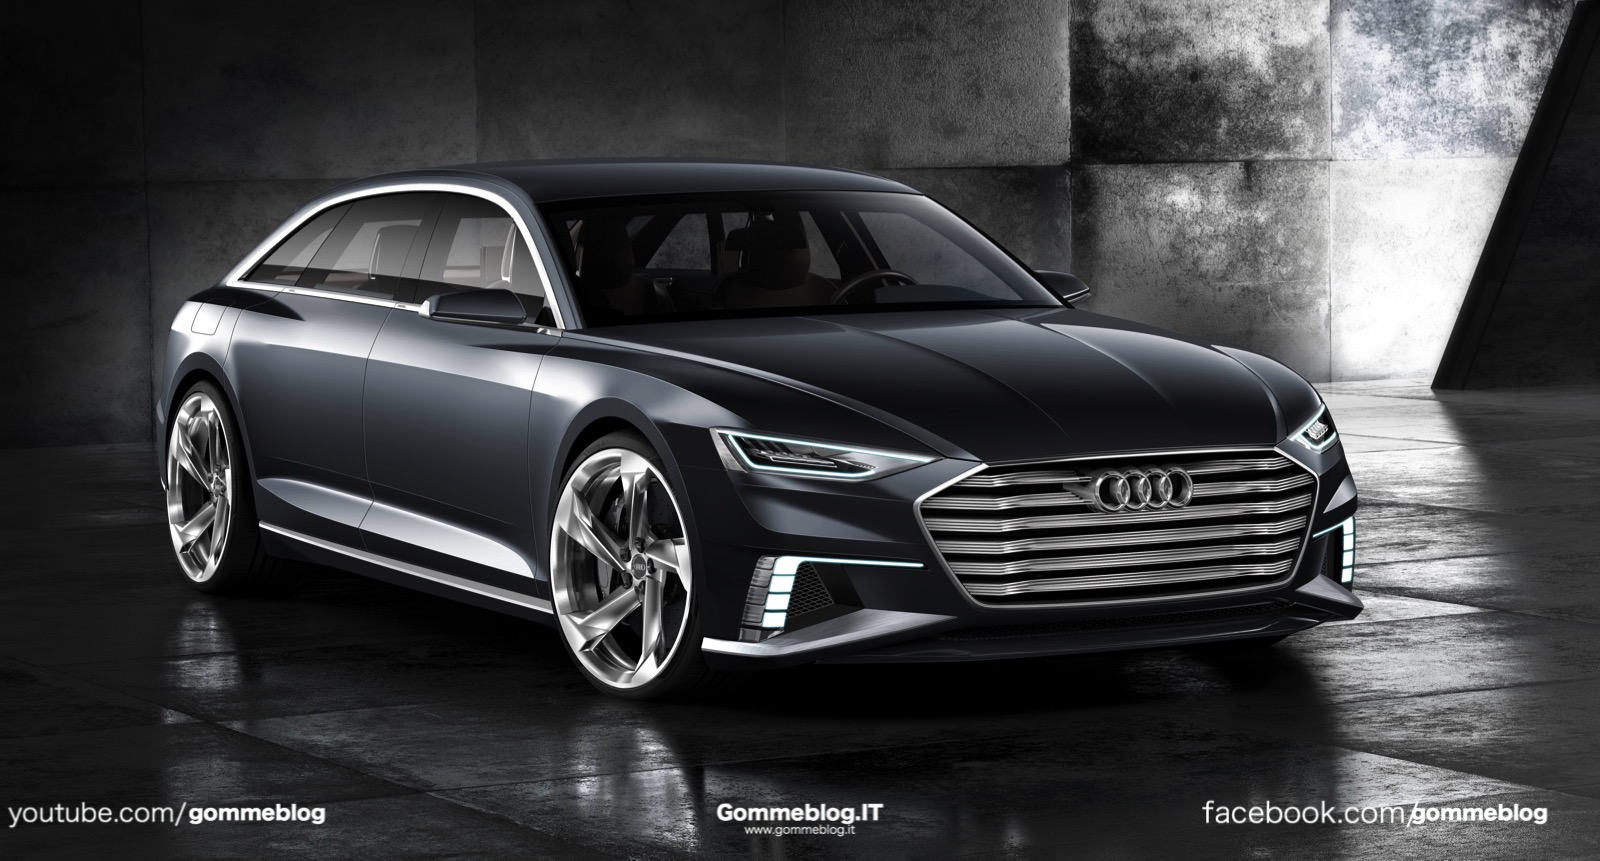 Audi Prologue: una nuova era del design